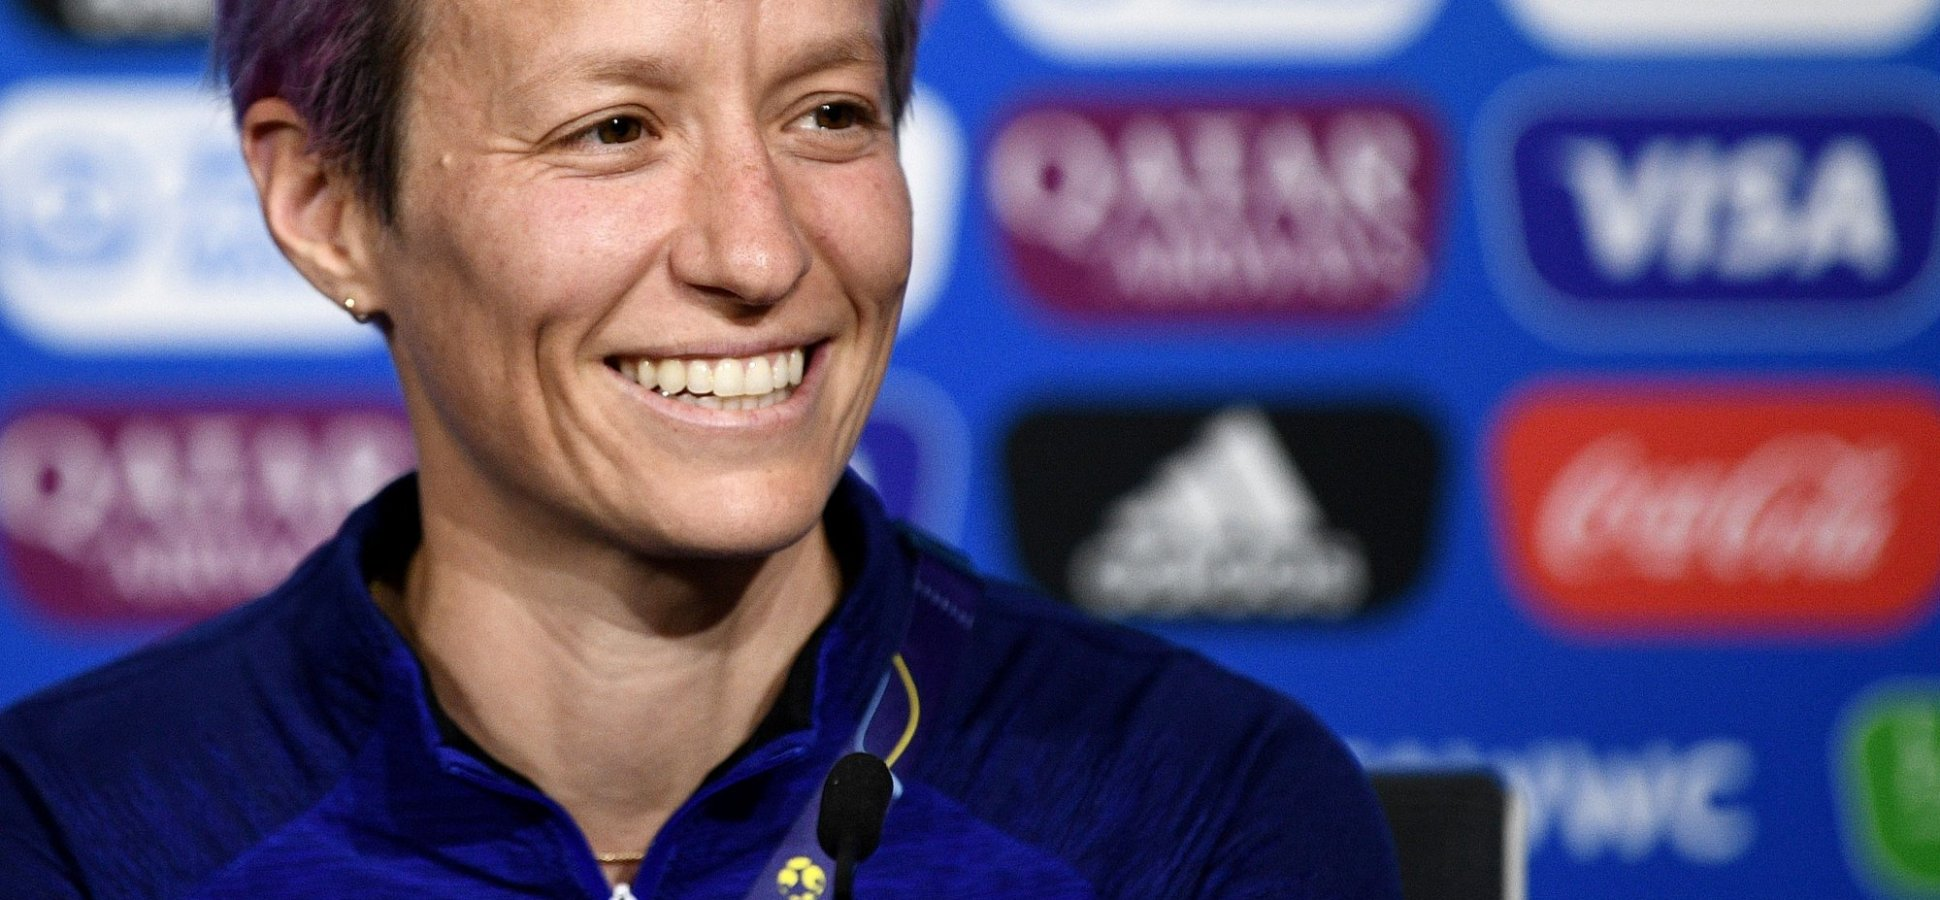 Case Closed: The U.S. Women's Soccer Team Should Definitely Be Paid As Much As the Men (and Probably More), According to Simple Math